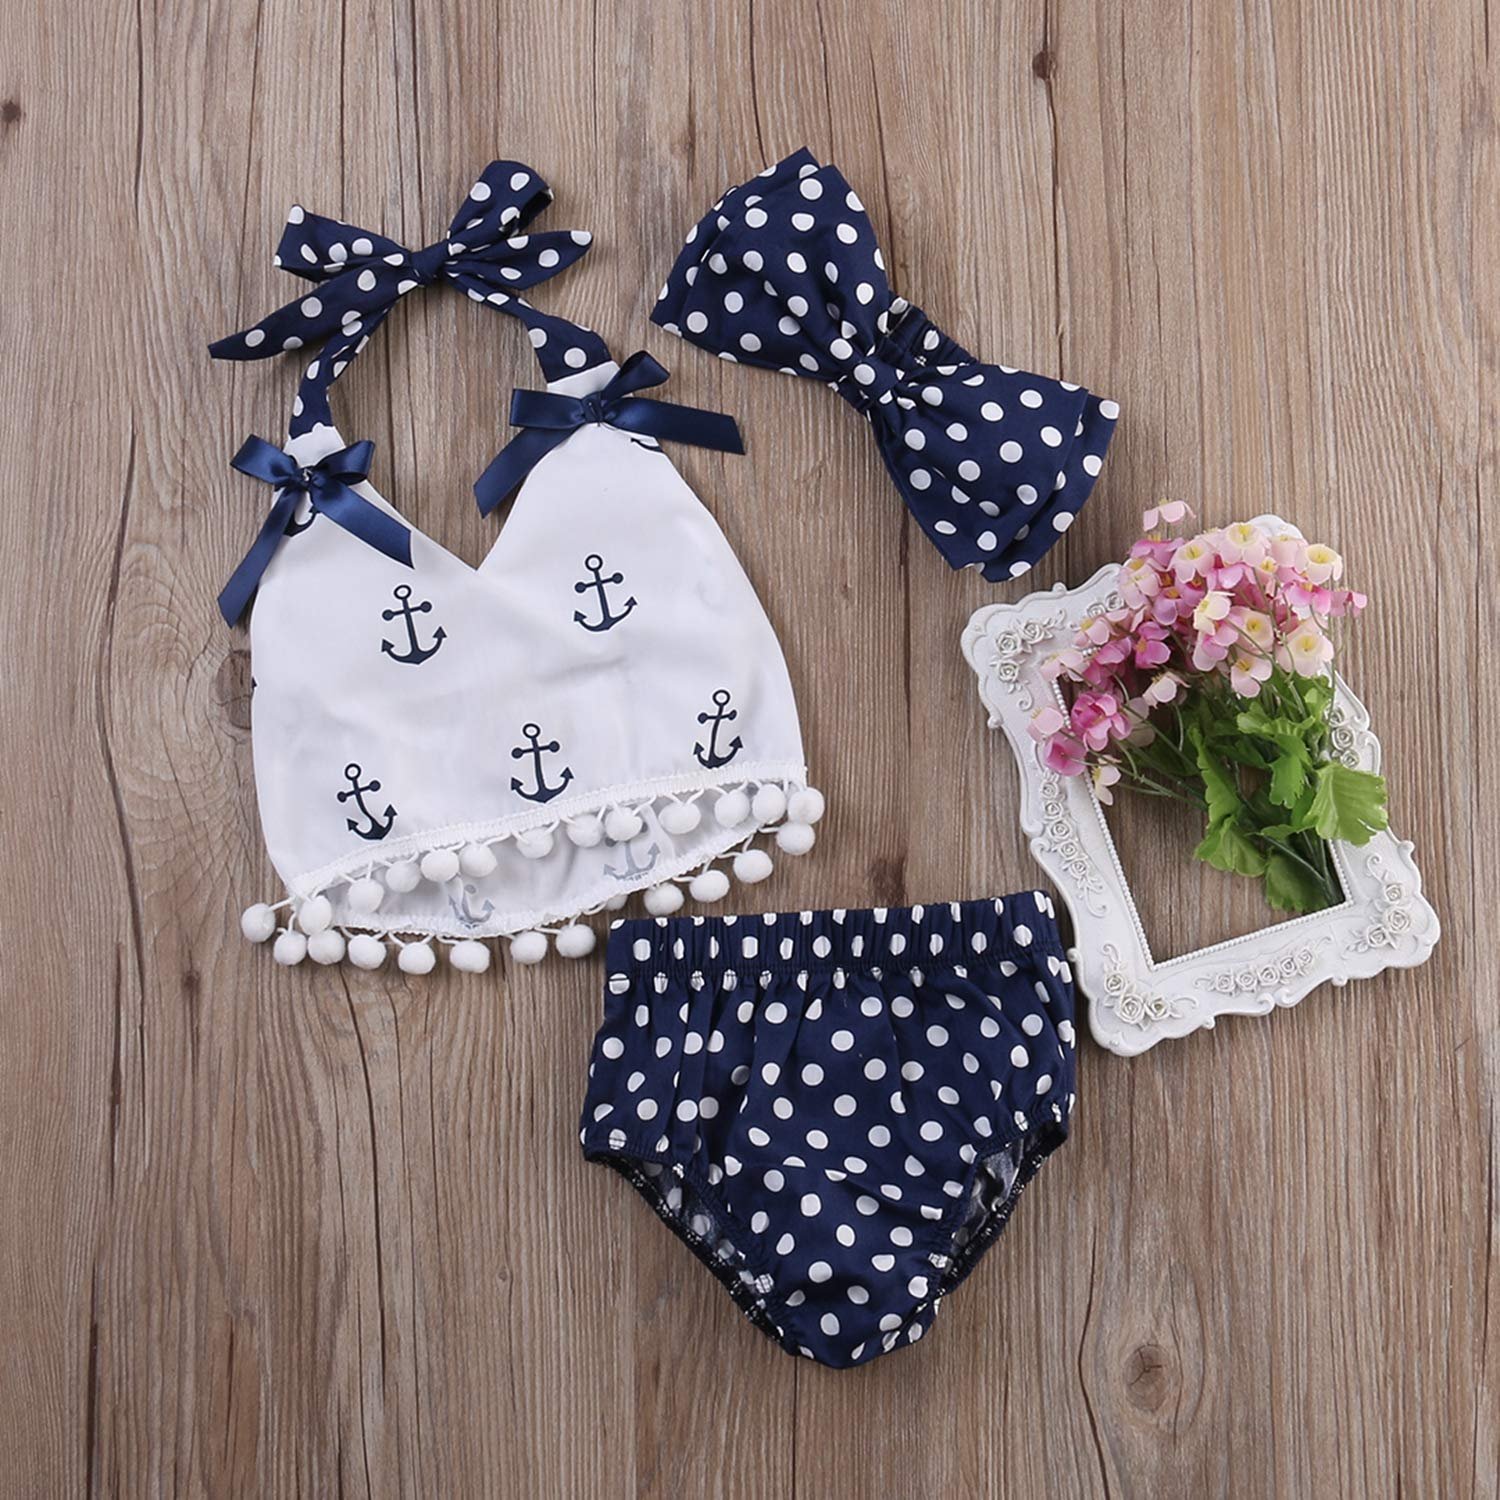 New 3pcs Baby Girl Clothes Tops and Navy Polka Dots Briefs Outfits Set Outfit Clothing Set